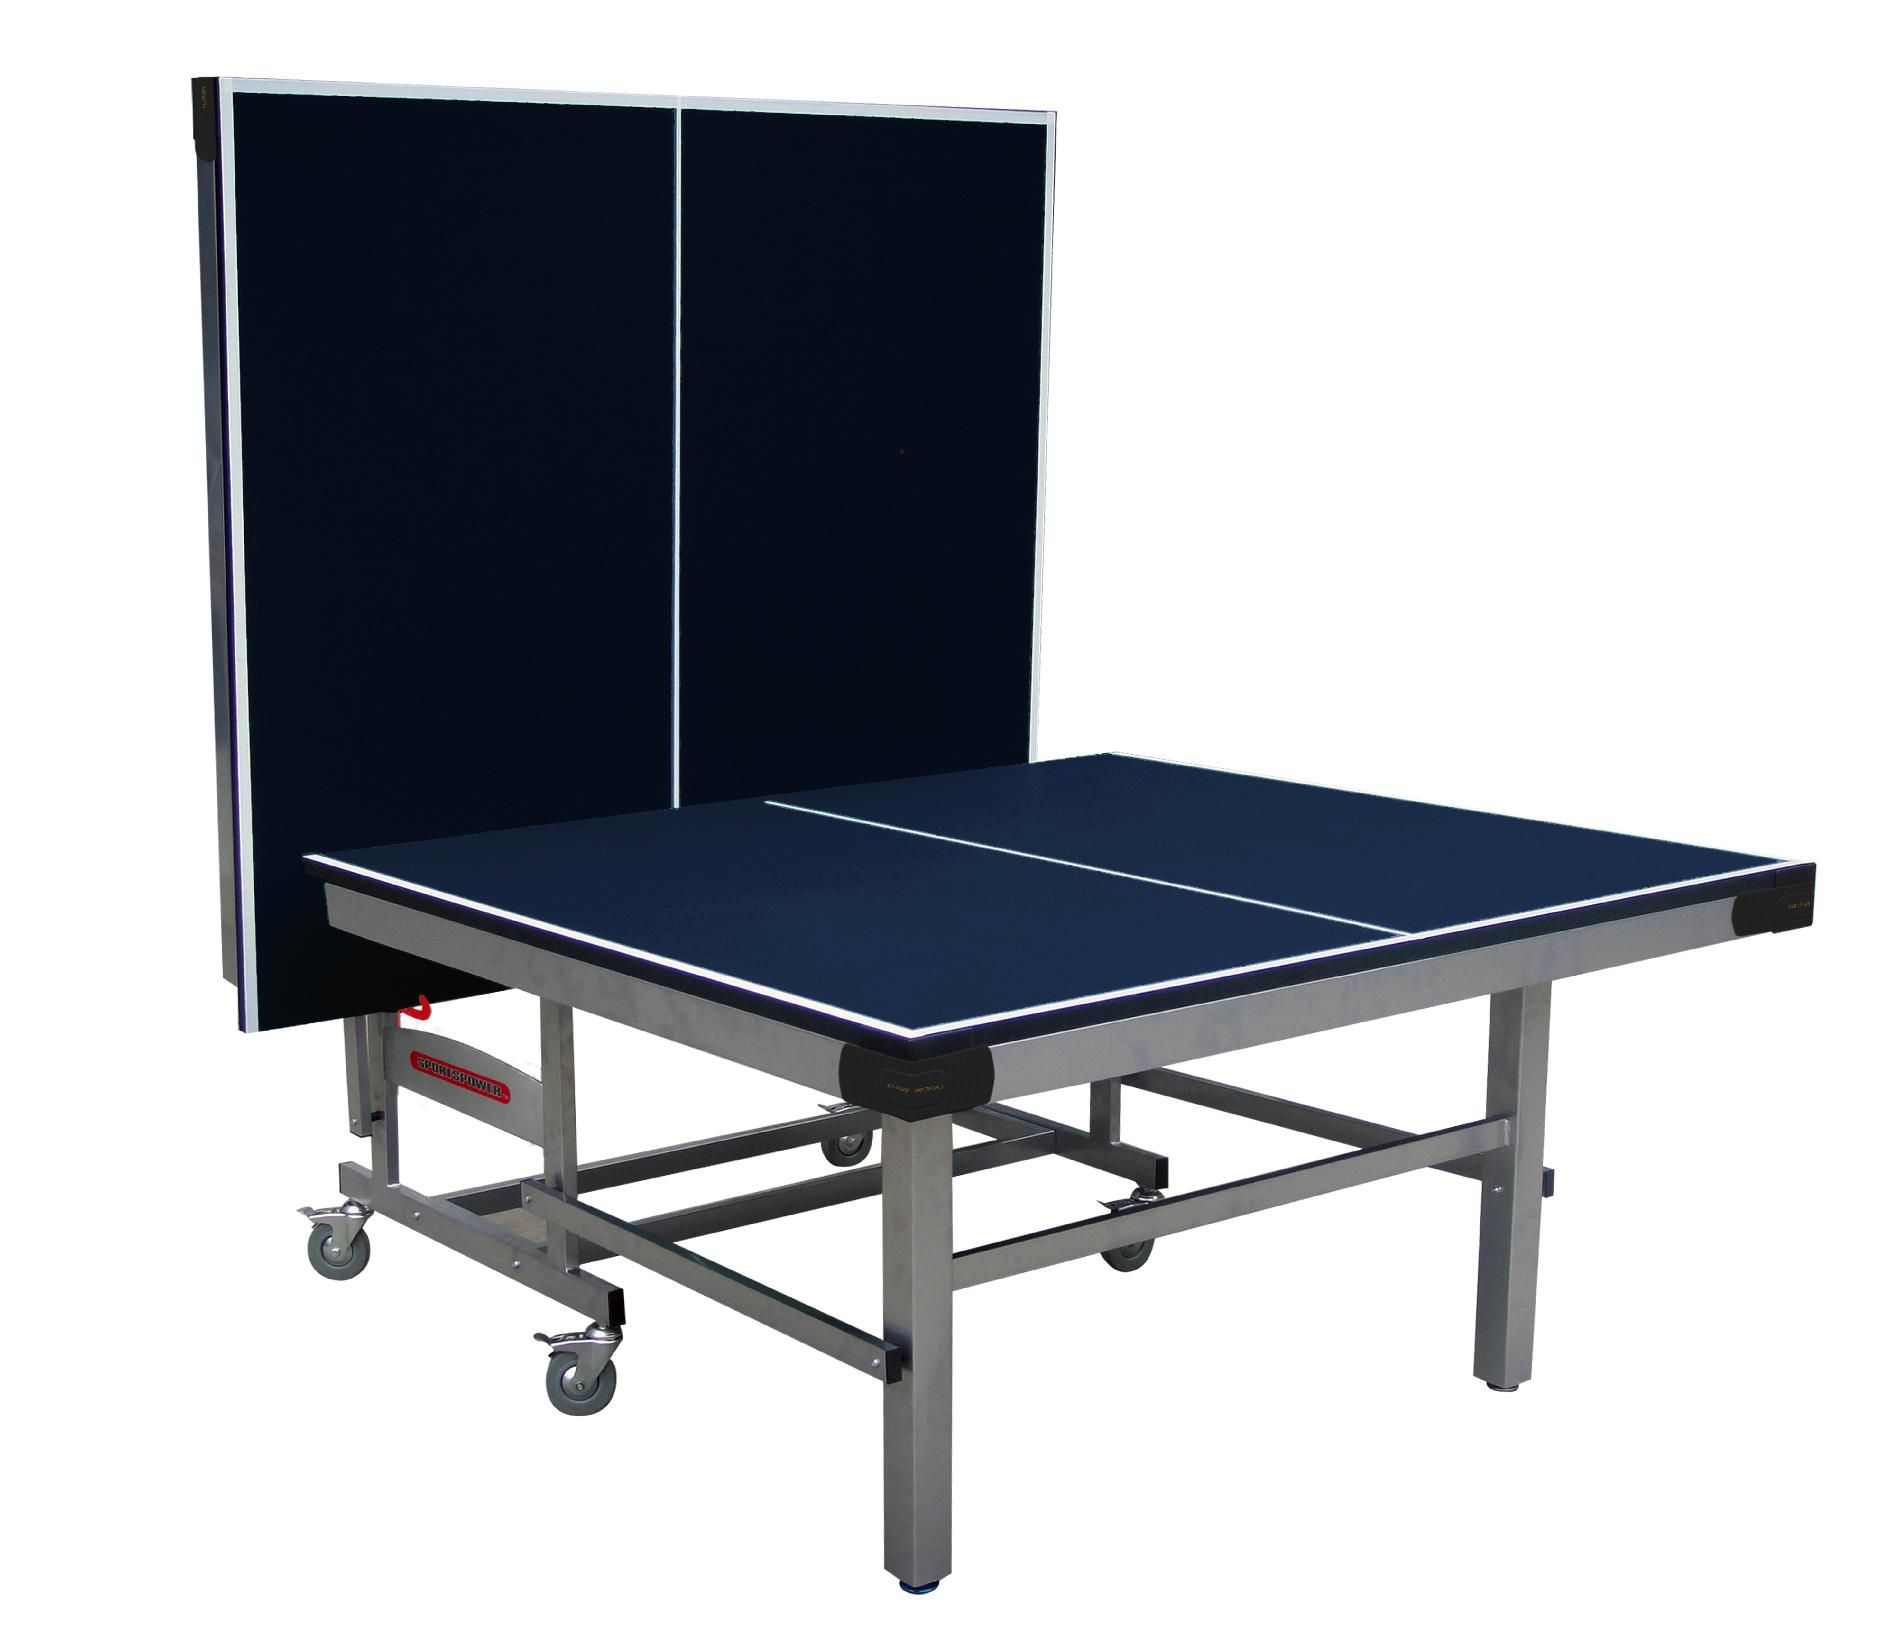 Sportspower Titan 2 Piece Table Tennis Set